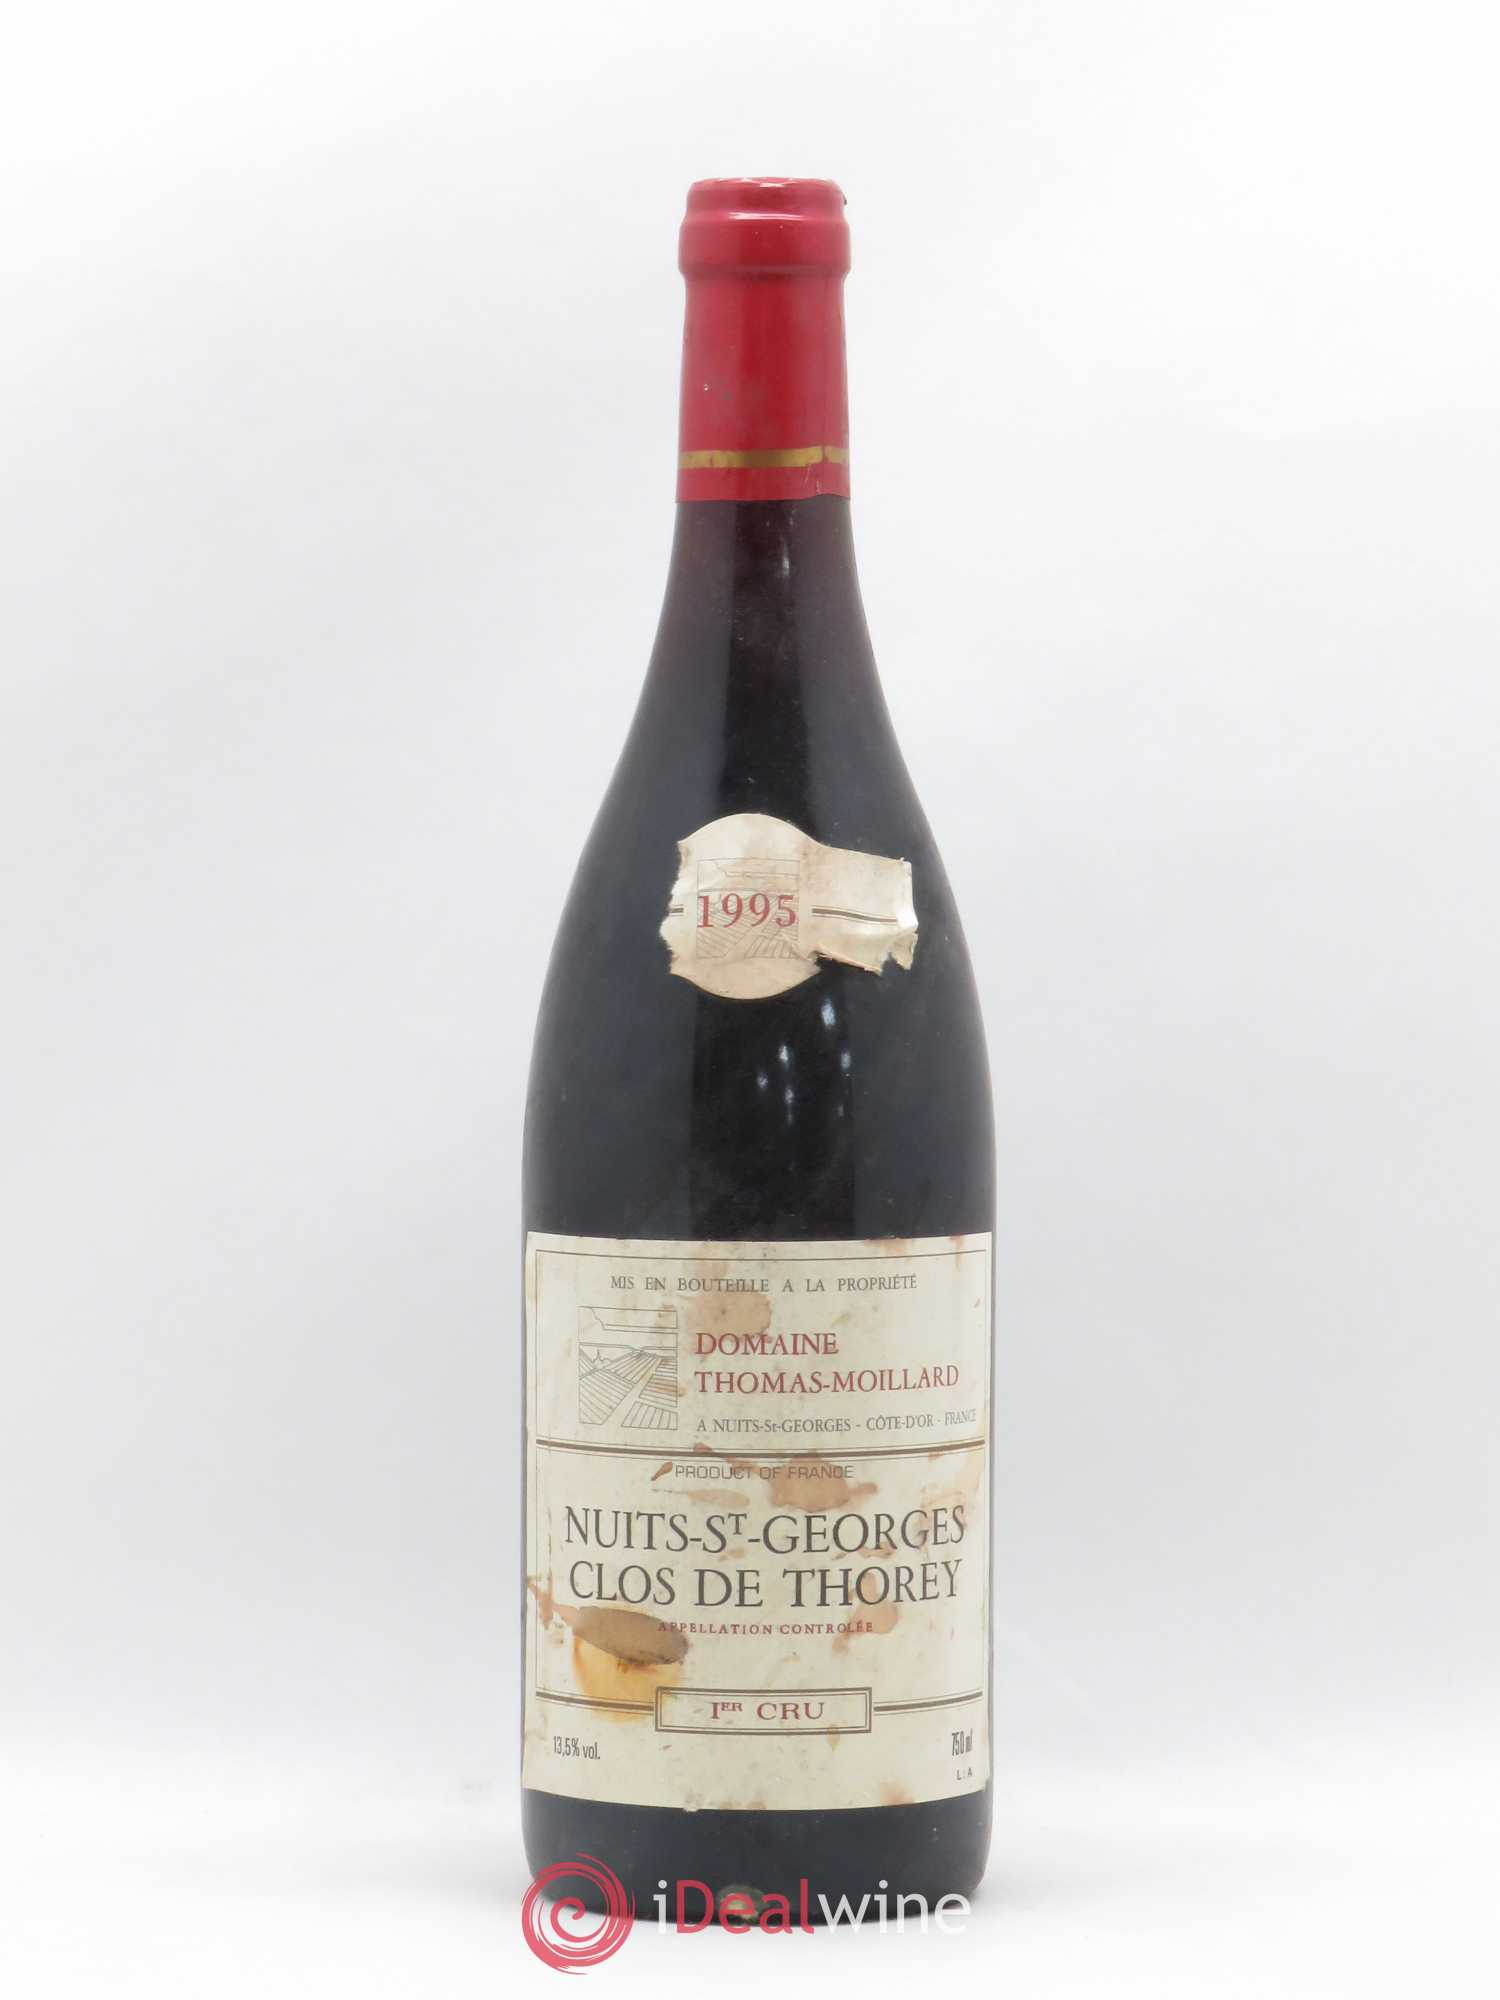 Nuits Saint-Georges 1er Cru Clos de Thorey Thomas Moillard 1995 - Lot of 1 Bottle